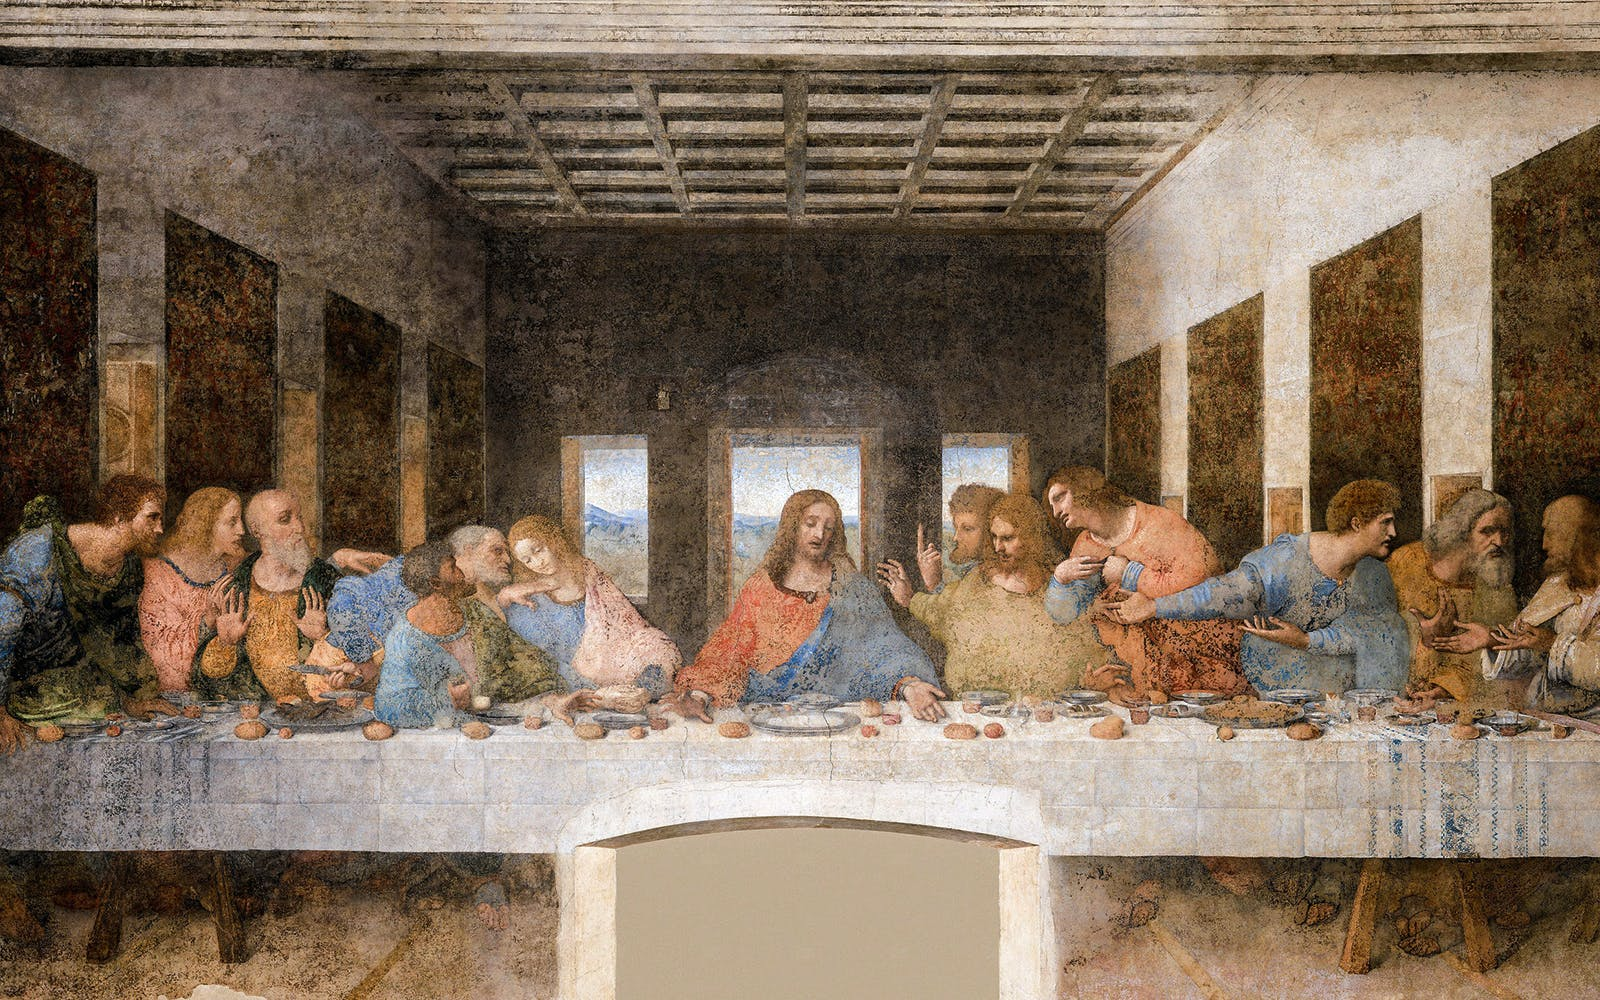 skip the line tickets to da vinci's last supper with guide-1